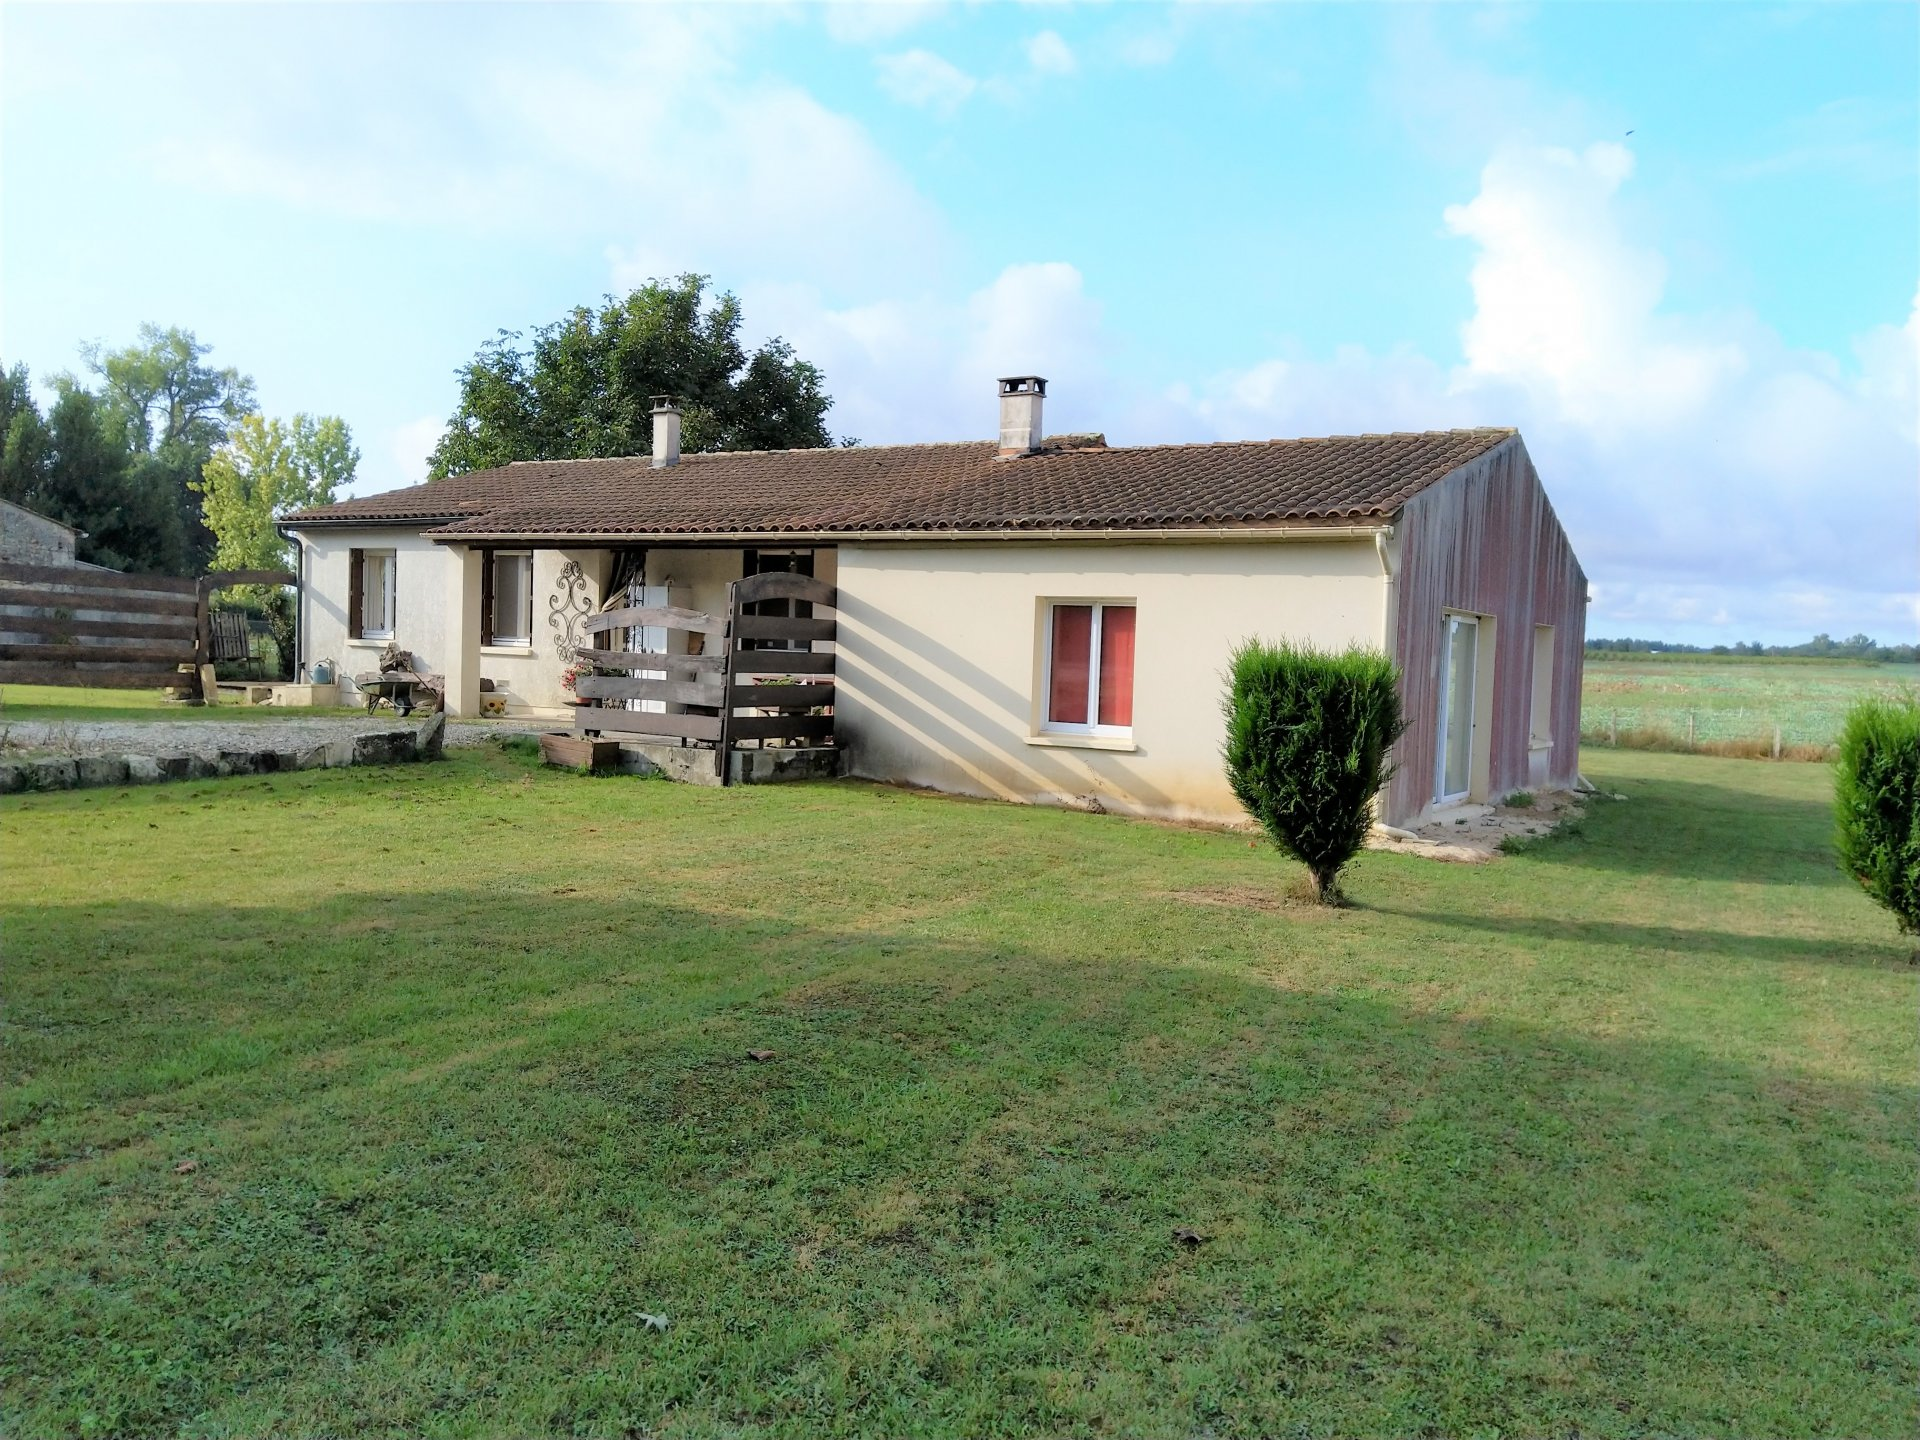 Four bedroom bungalow with stone barn and garden